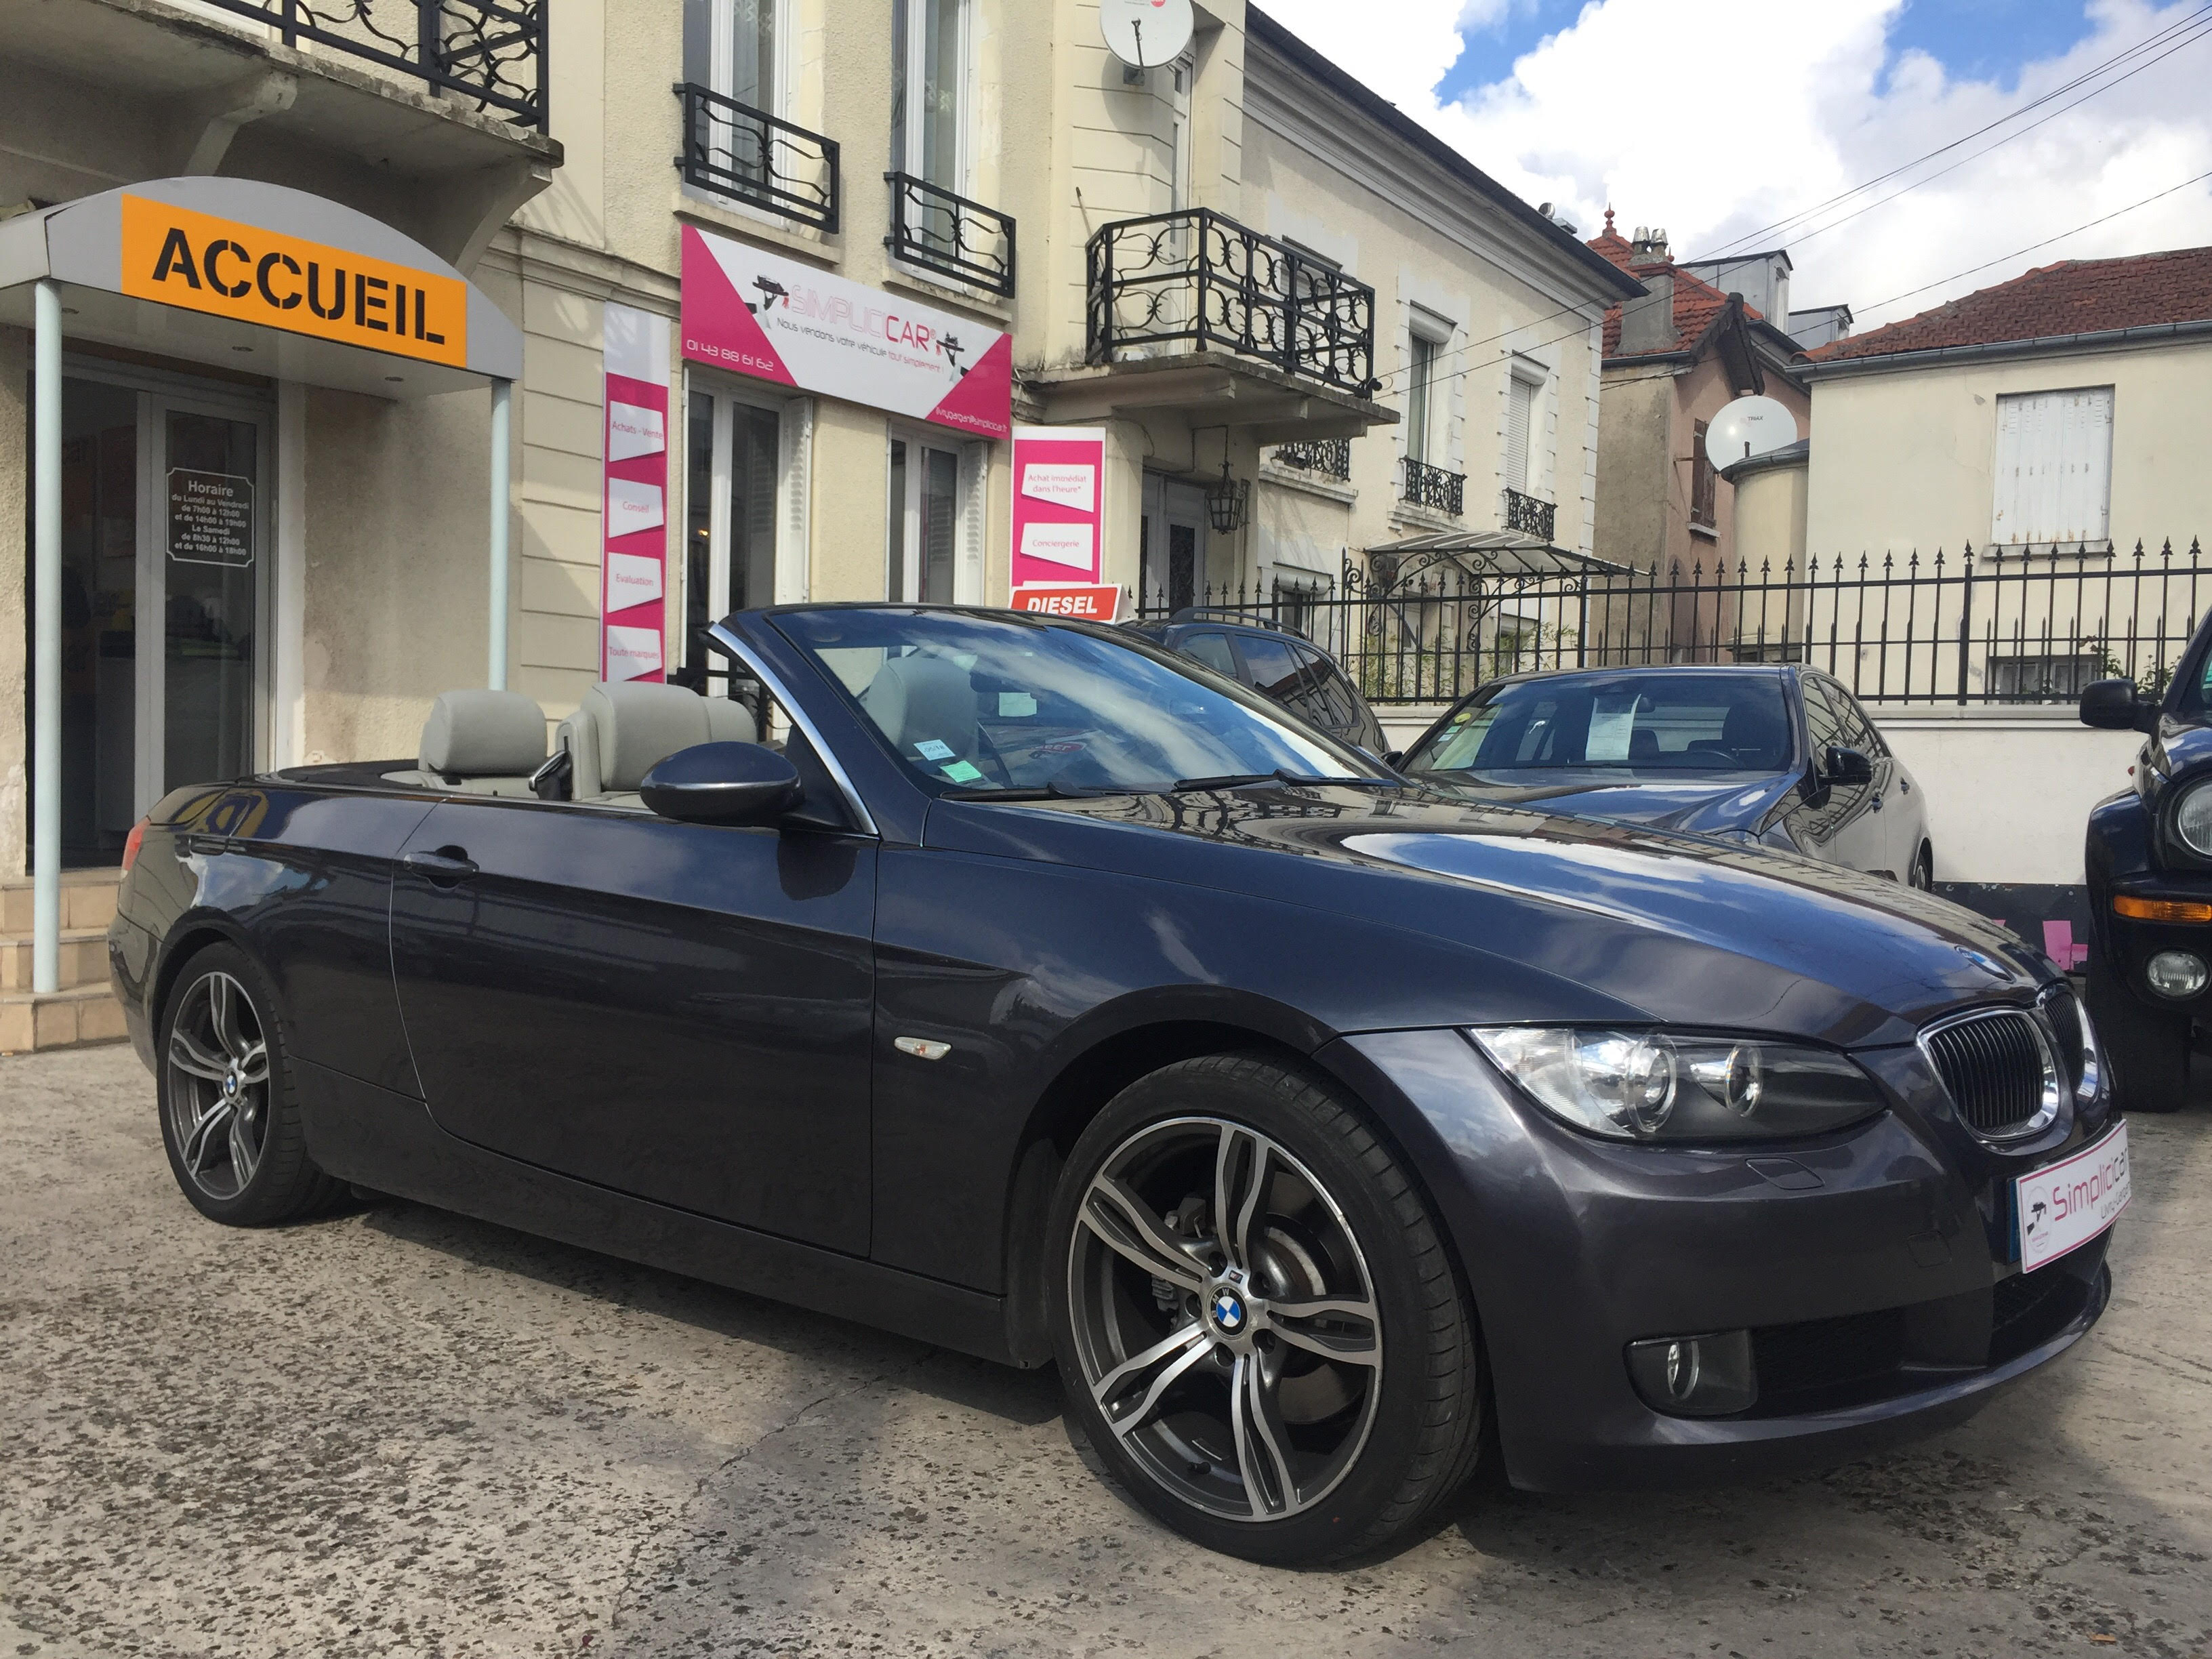 voiture bmw cab 325d luxe a occasion diesel 2008 99500 km 17990 livry gargan seine. Black Bedroom Furniture Sets. Home Design Ideas